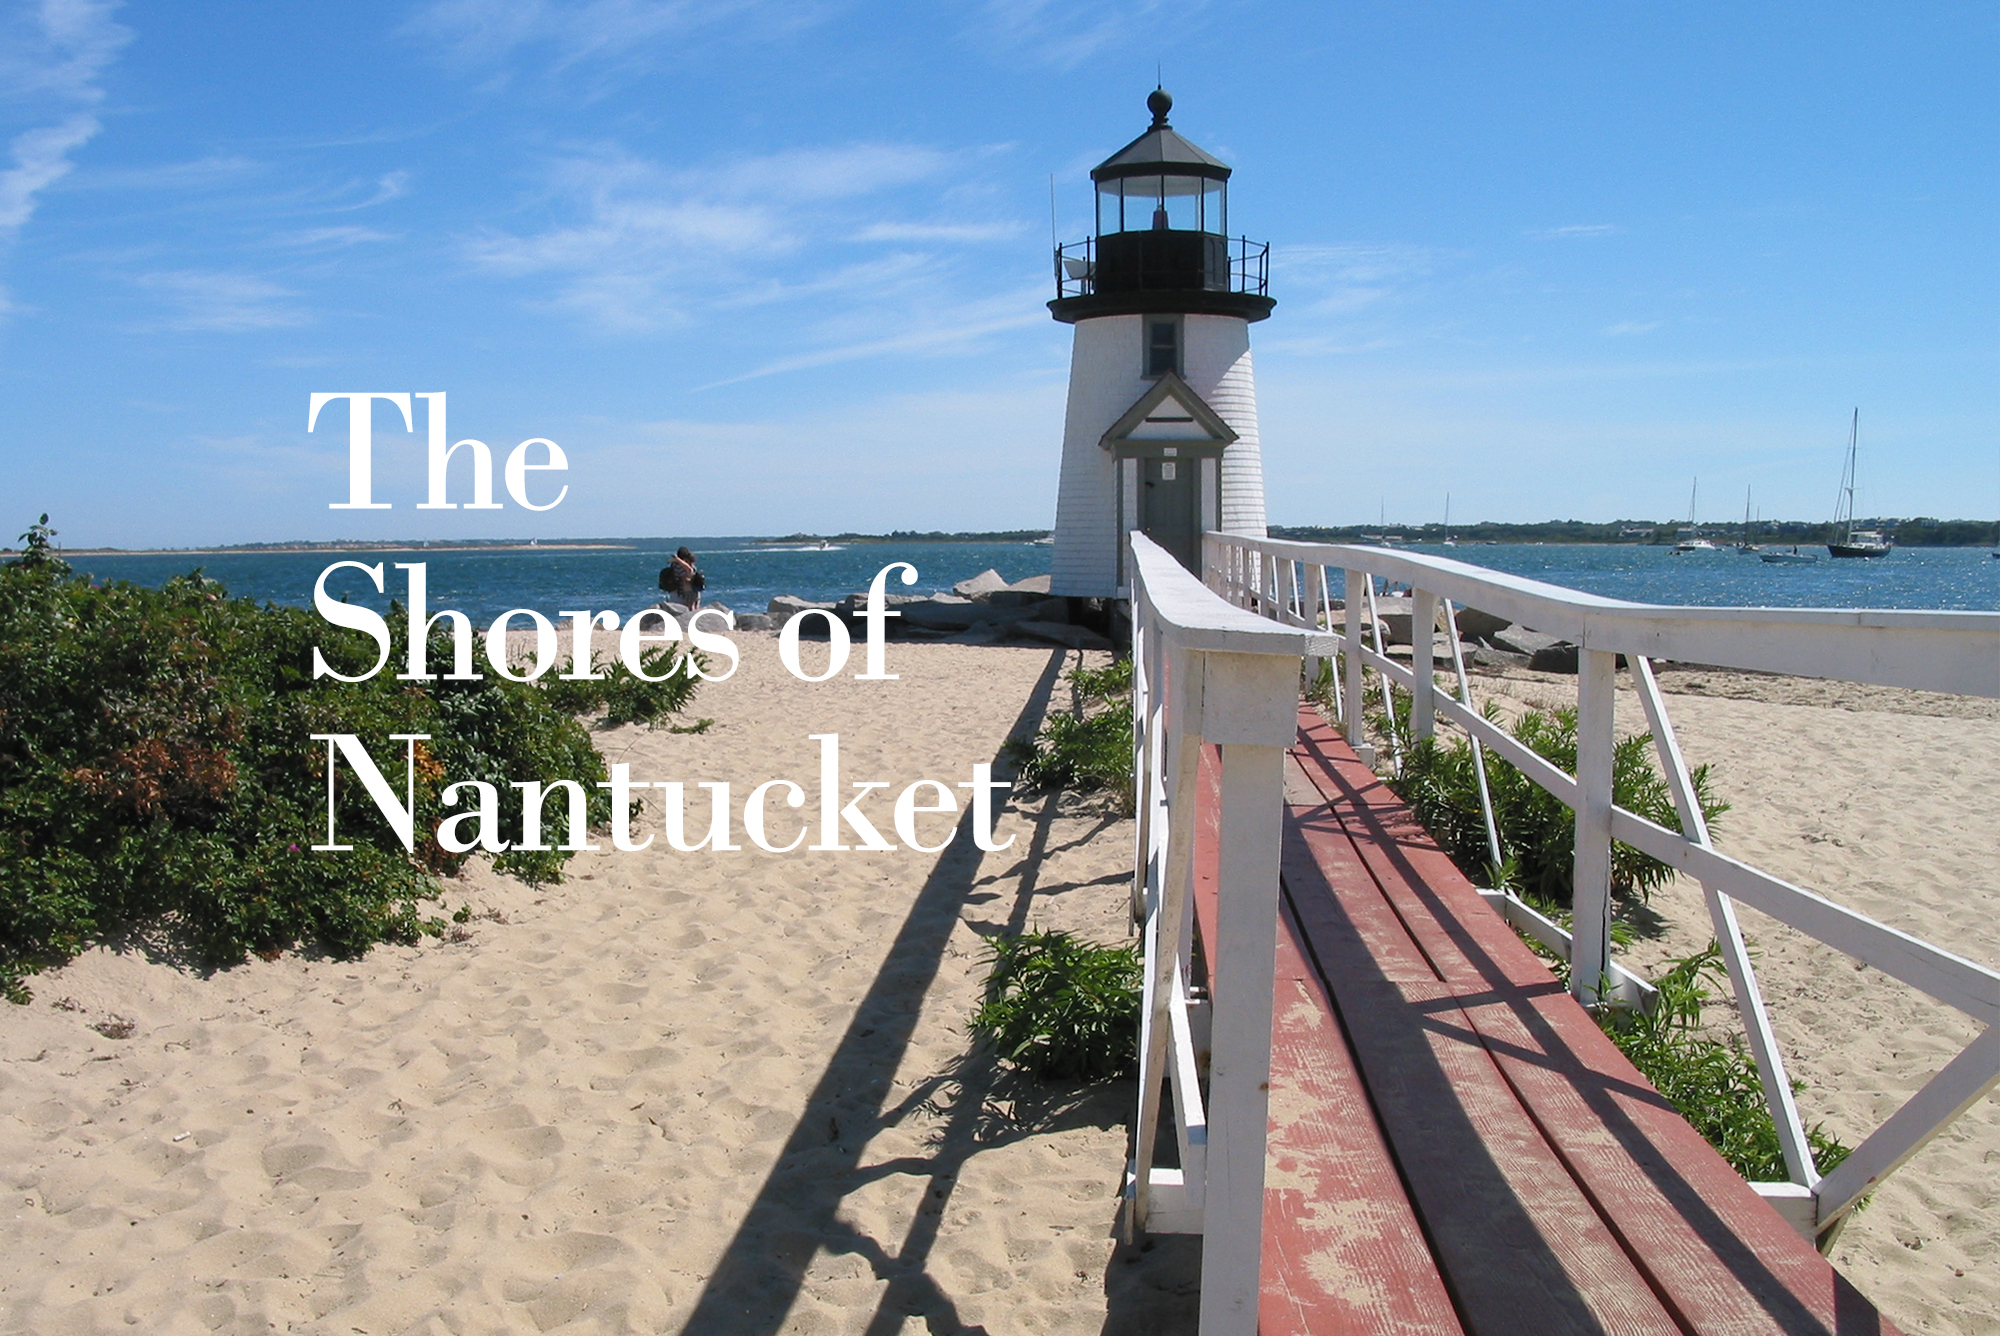 The Shores of Nantucket